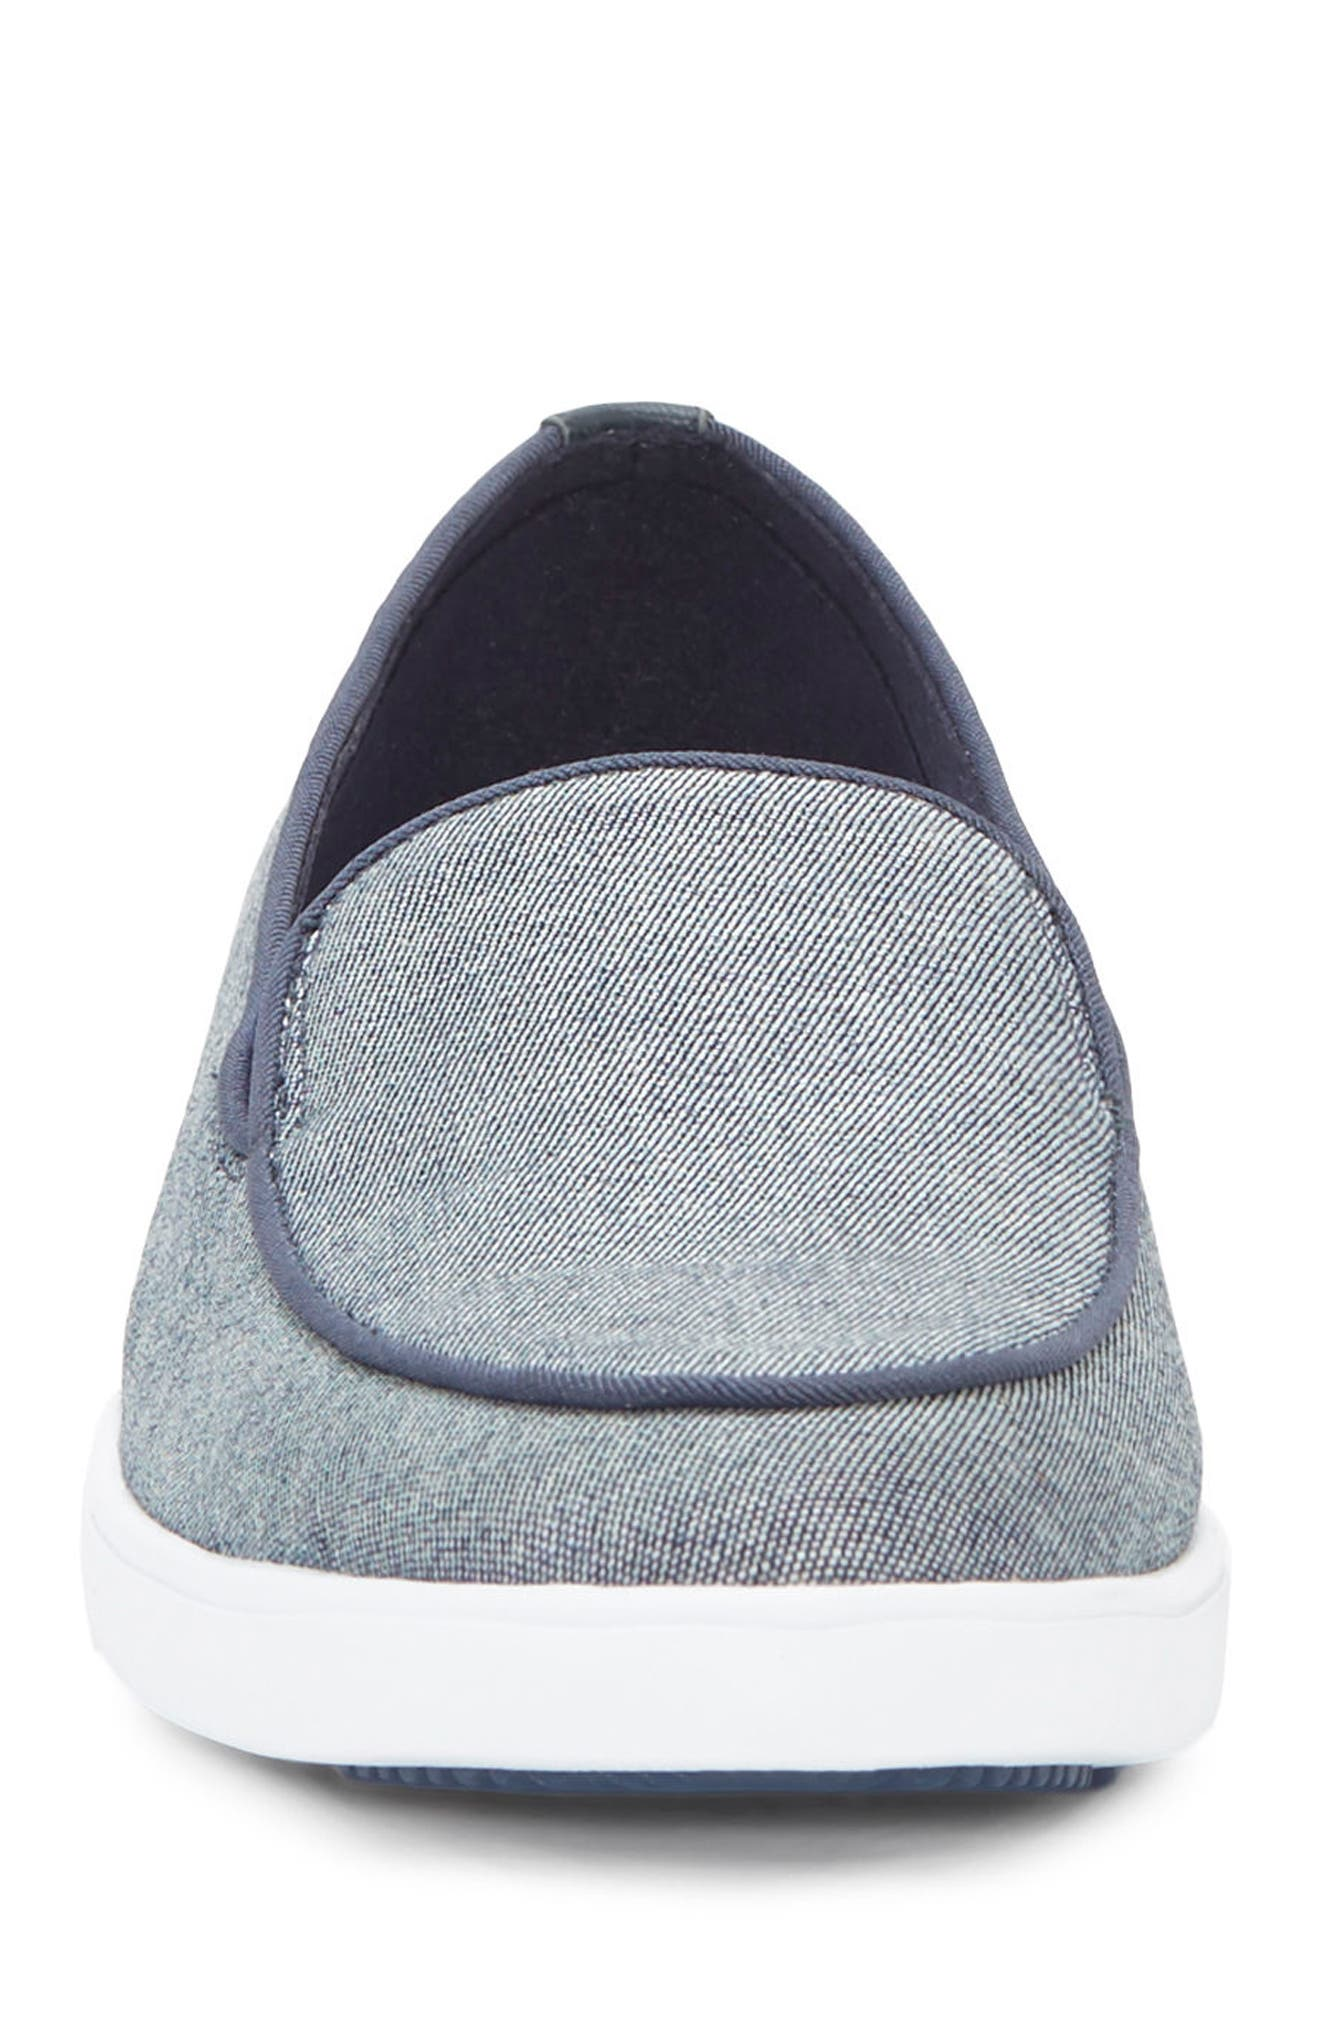 Antona Slip-On Sneaker,                             Alternate thumbnail 4, color,                             Blue Fabric